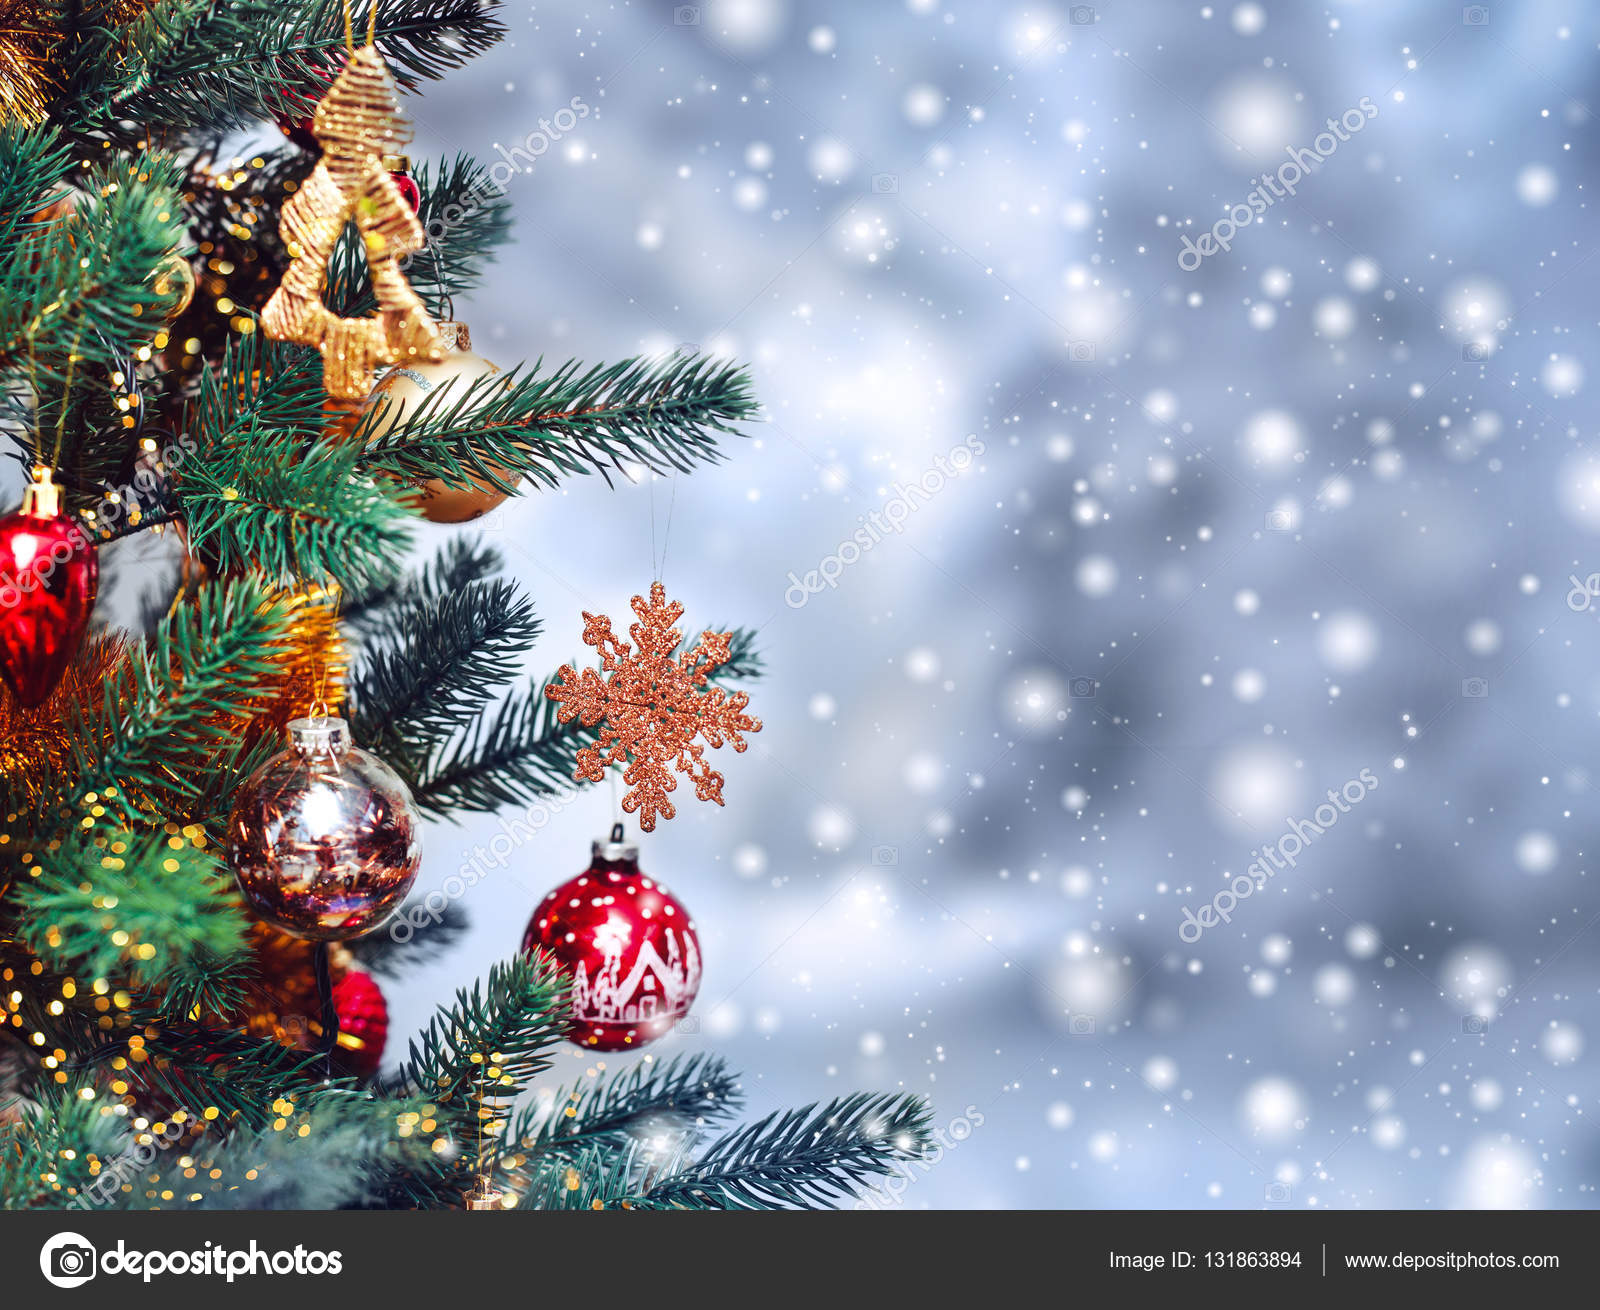 1600x1310 - Christmas Trees Backgrounds 25